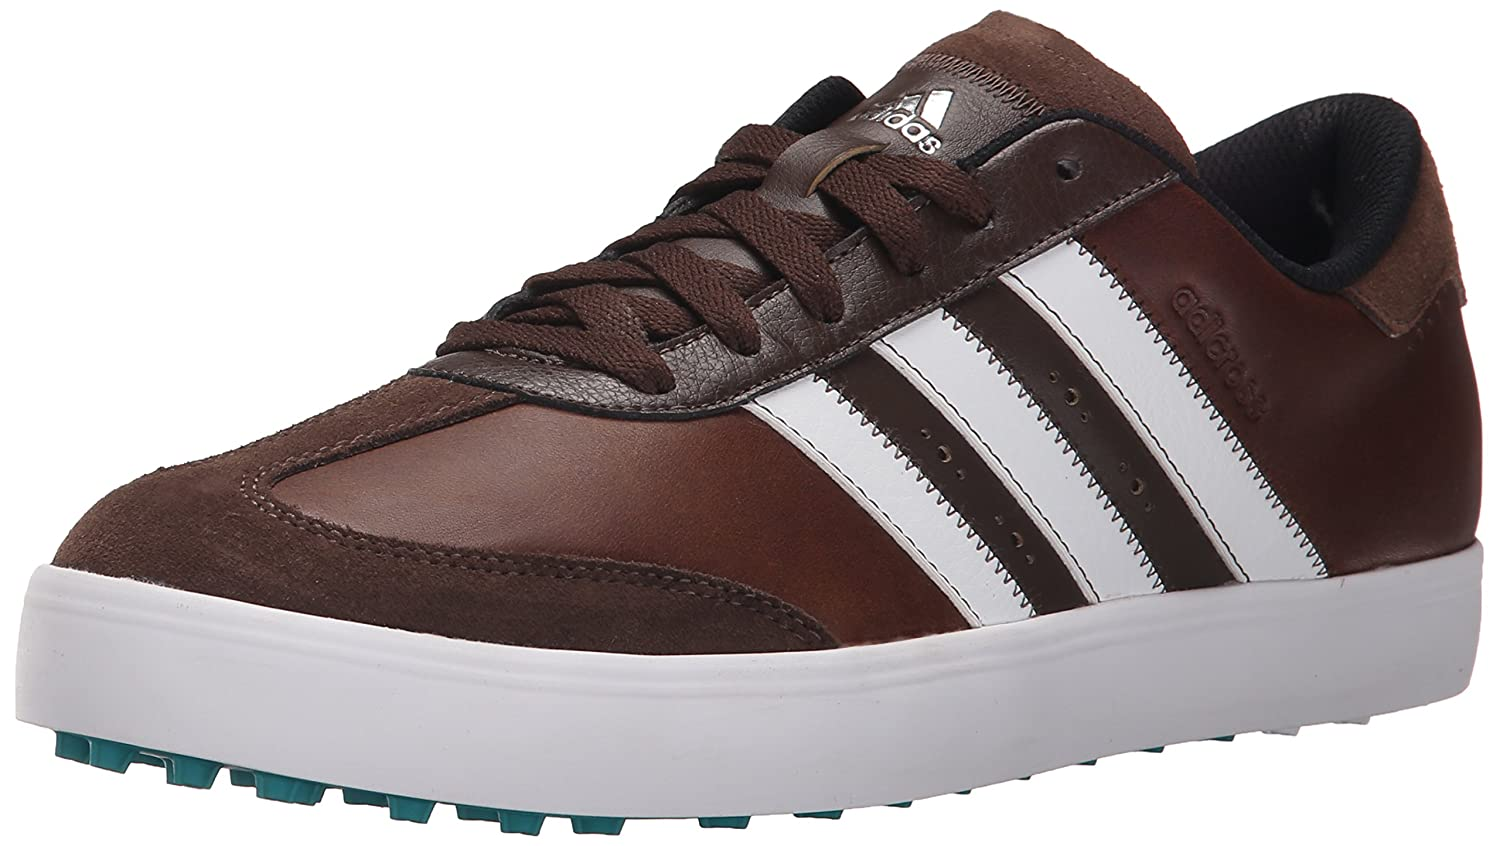 lowest price 91eee 265fd Amazon.com  adidas Mens Adicross V Golf Spikeless Shoe  Golf